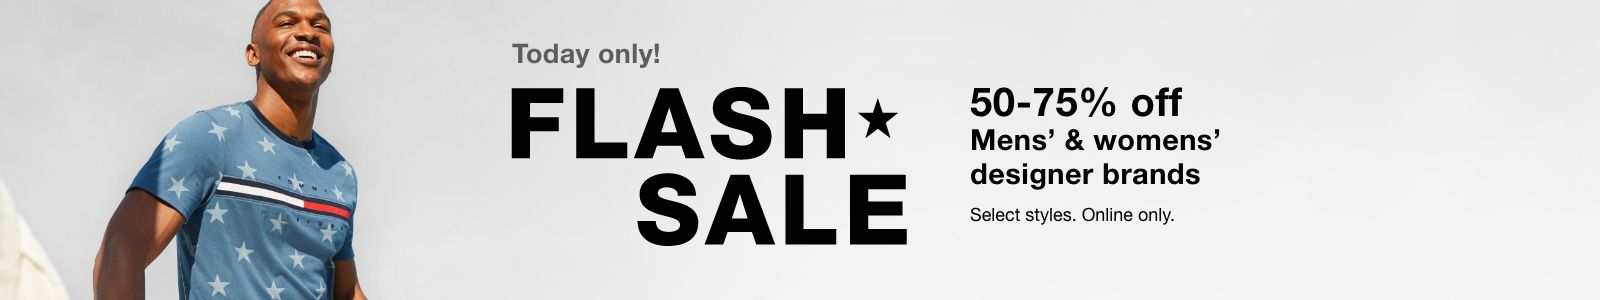 Today Only, Flash Sale, 50-75% off, Men's and Women's designer brands, Shop Now